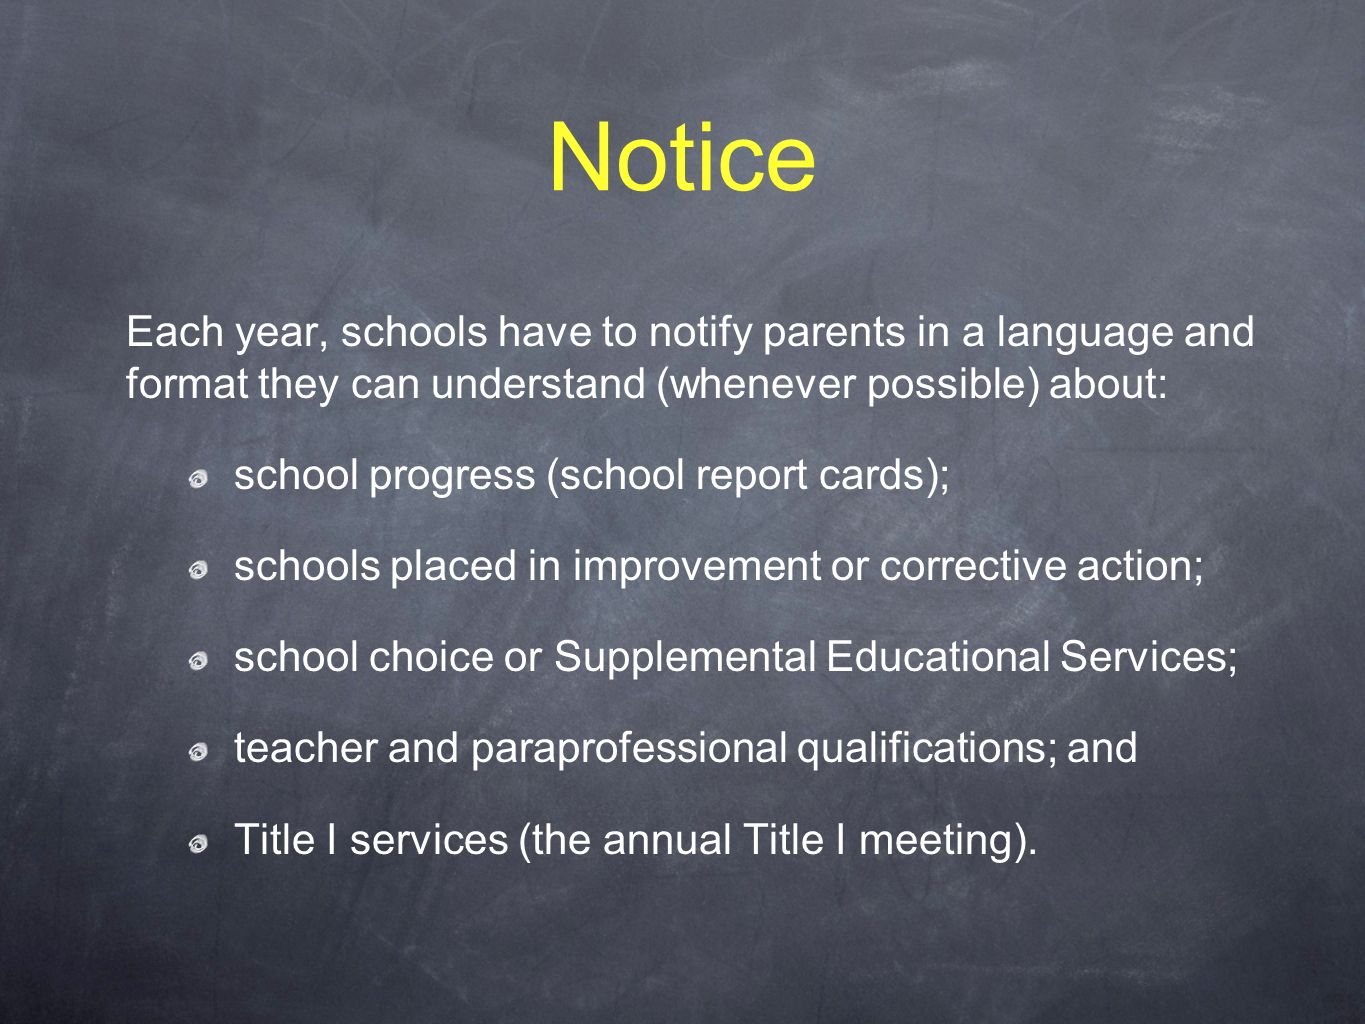 Notice Each year, schools have to notify parents in a language and format they can understand (whenever possible) about: school progress (school report cards); schools placed in improvement or corrective action; school choice or Supplemental Educational Services; teacher and paraprofessional qualifications; and Title I services (the annual Title I meeting).